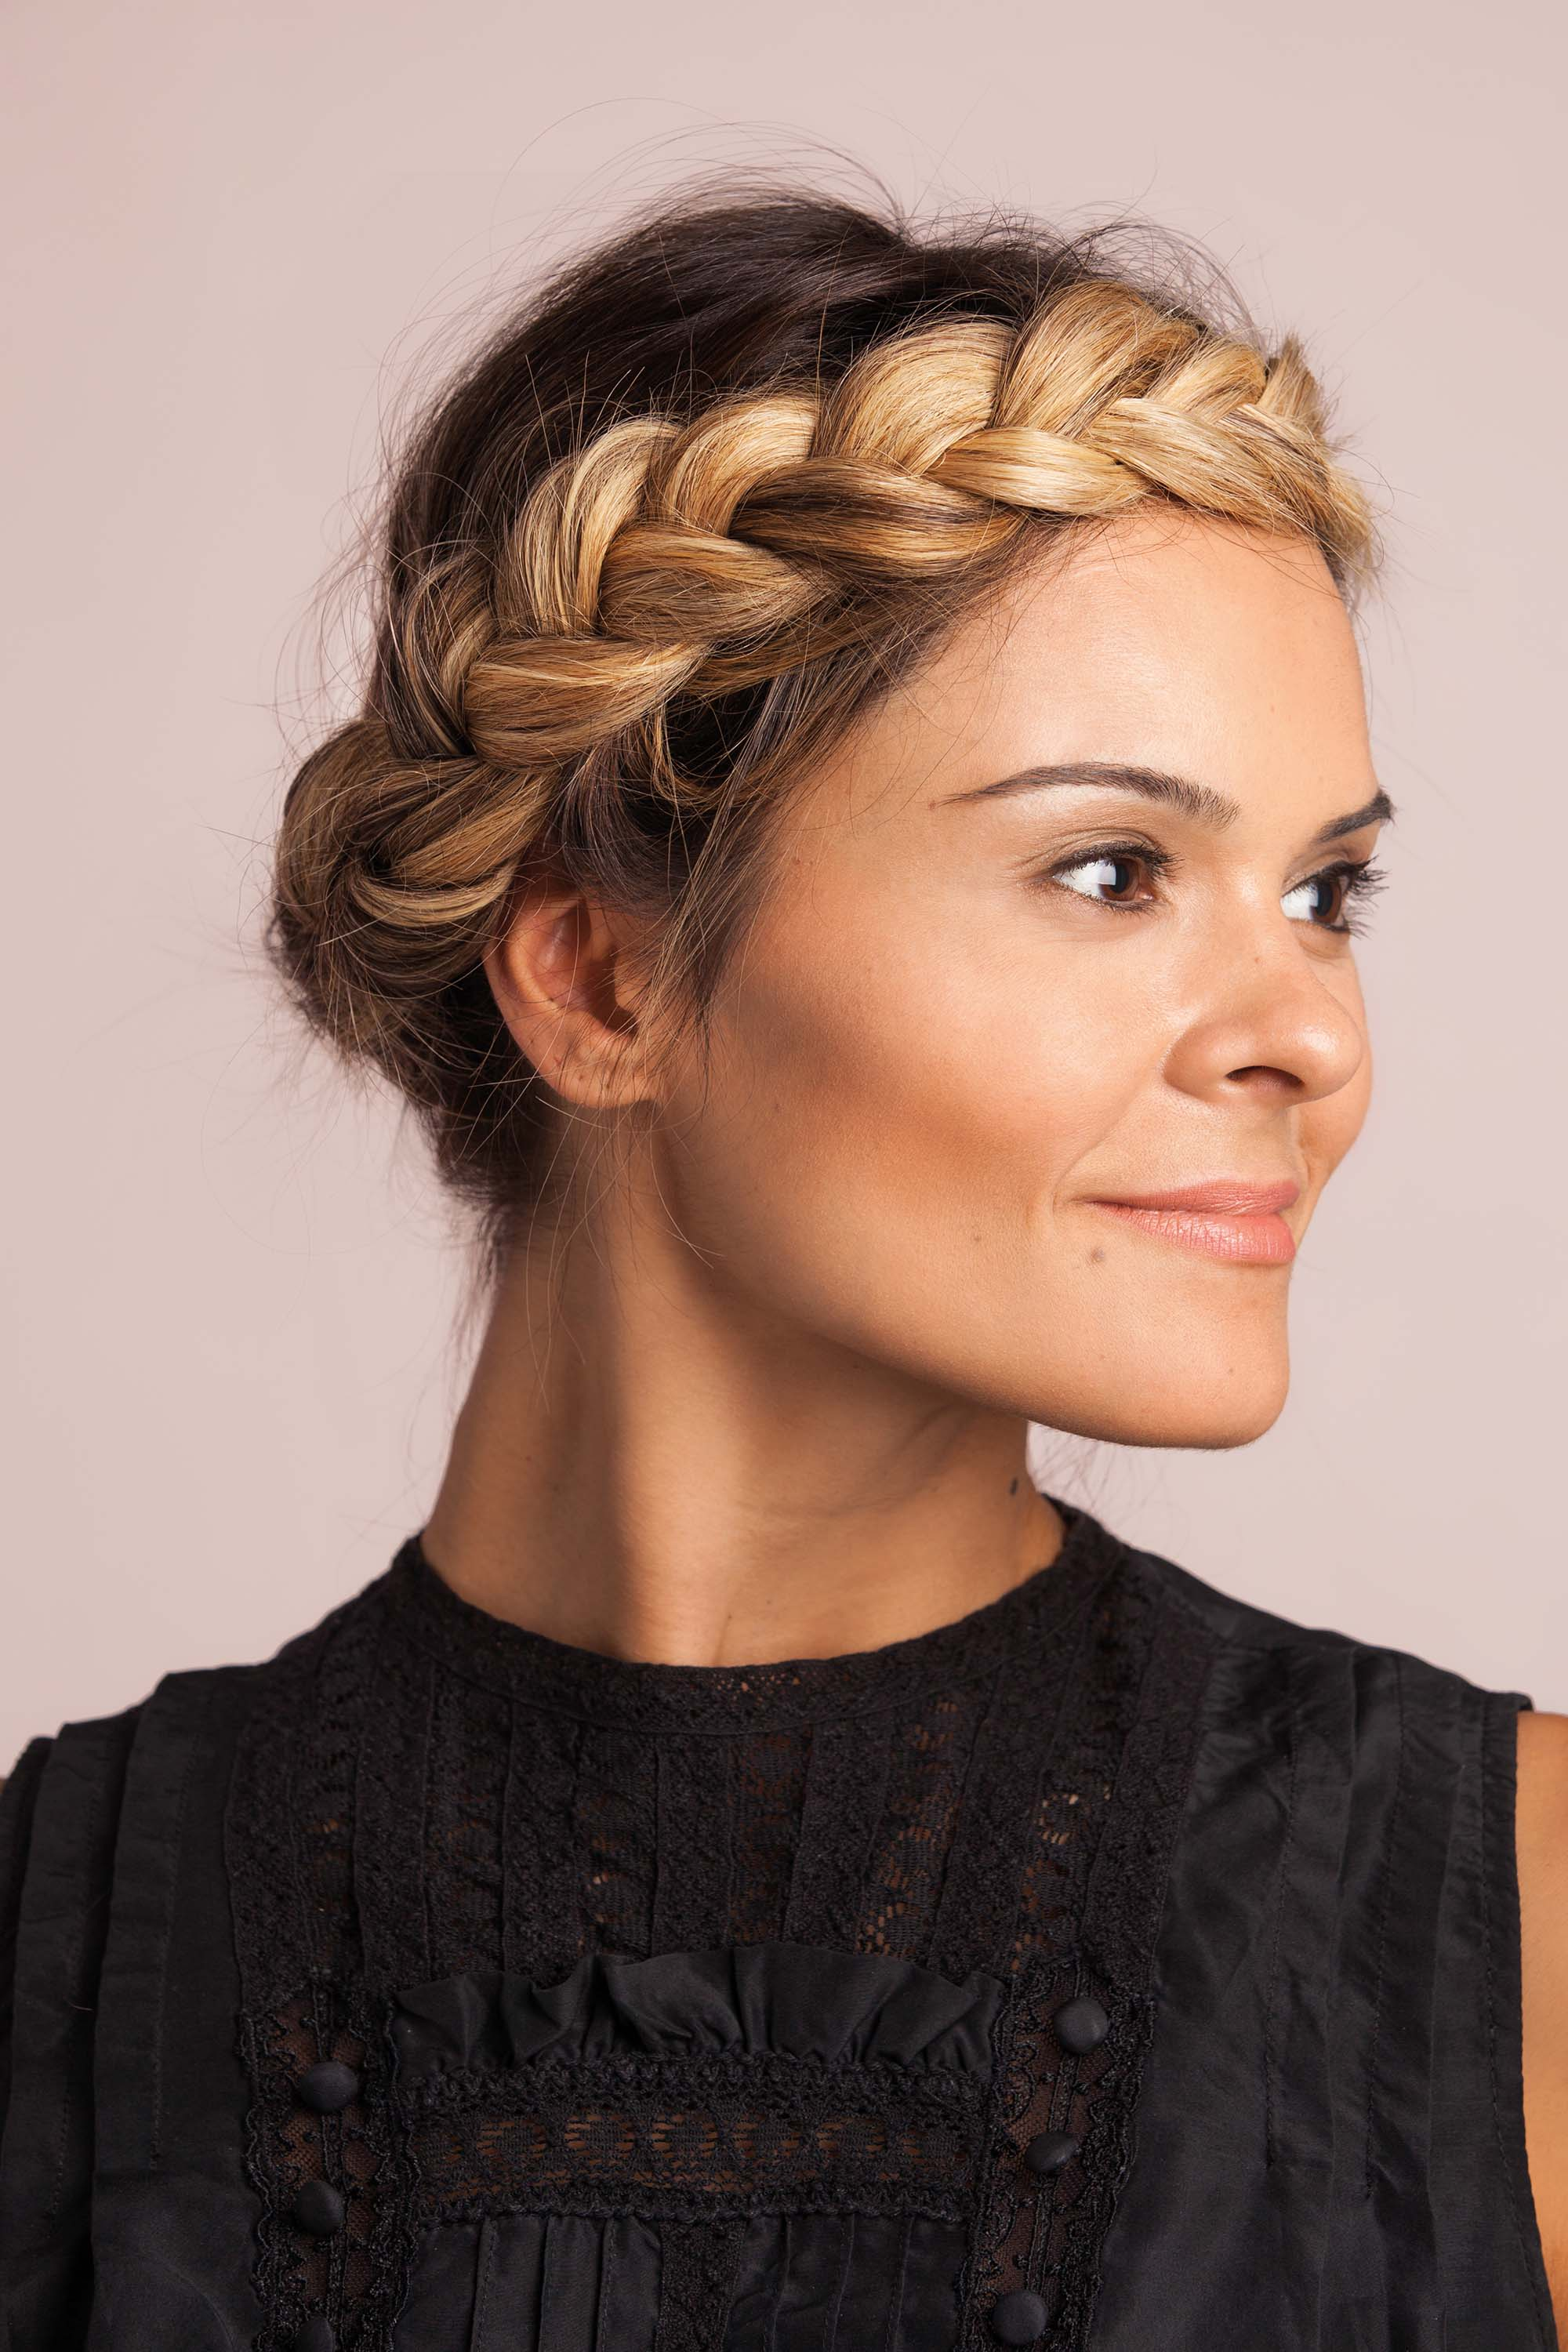 Halo Braid Hair Tutorial: How to Create this Braided Hairstyle in 3 Ways